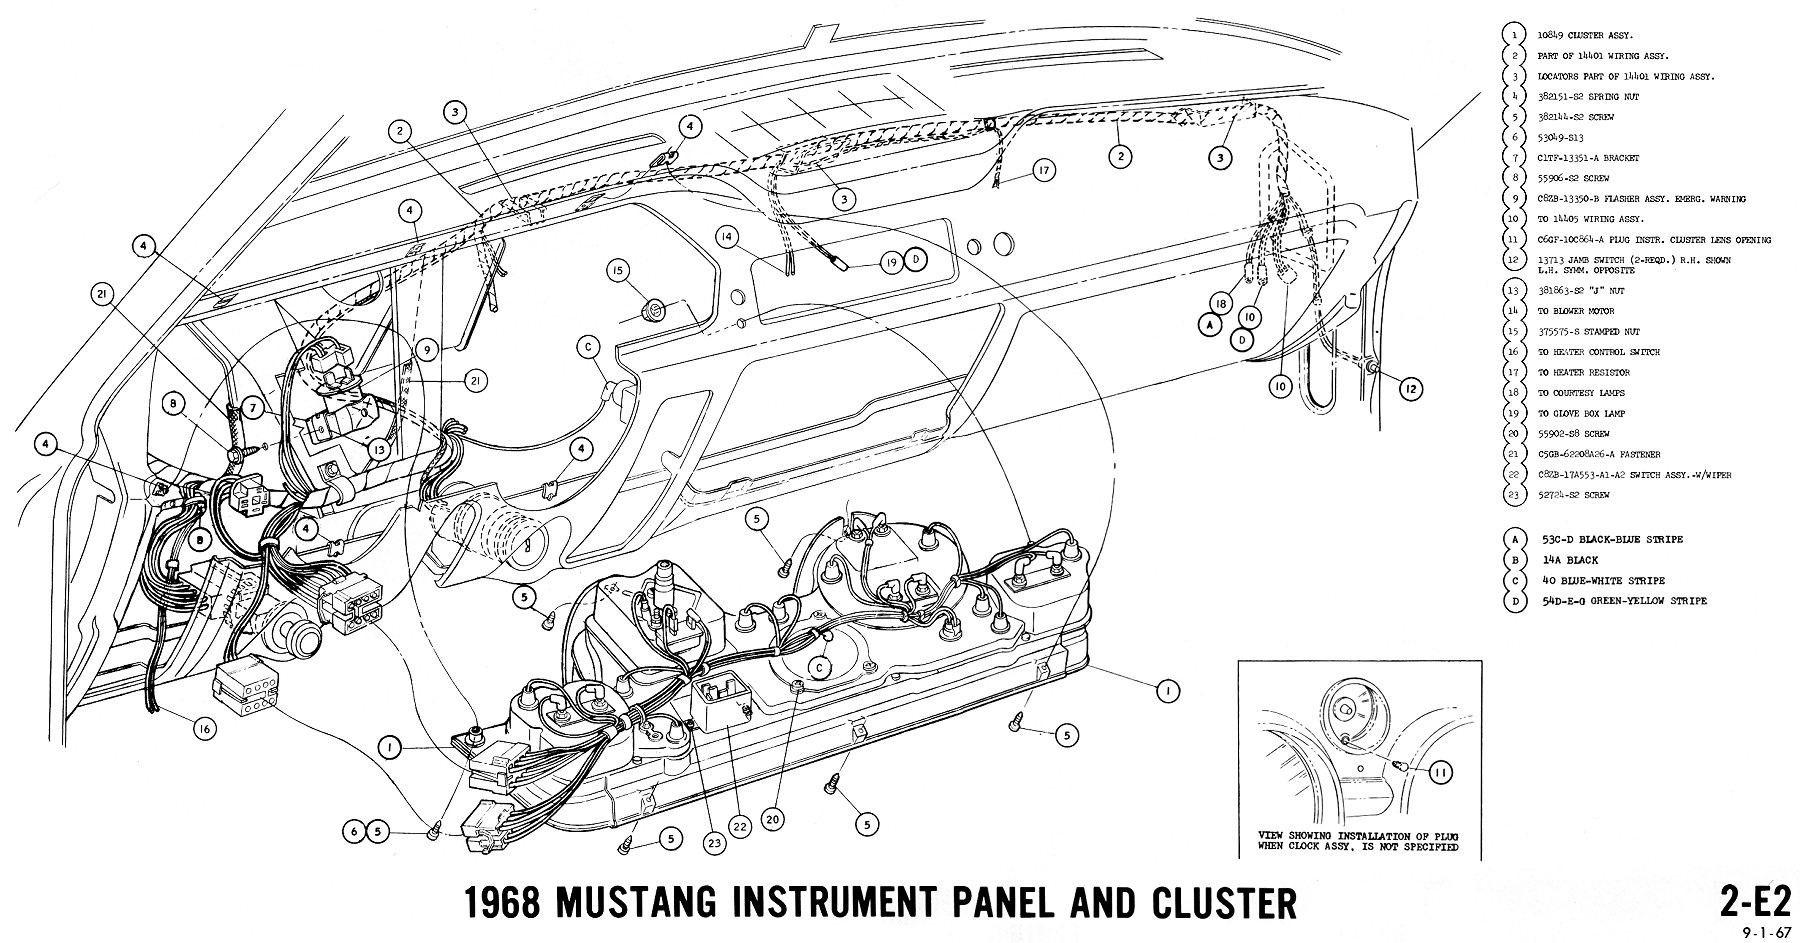 99 mustang gt engine diagram